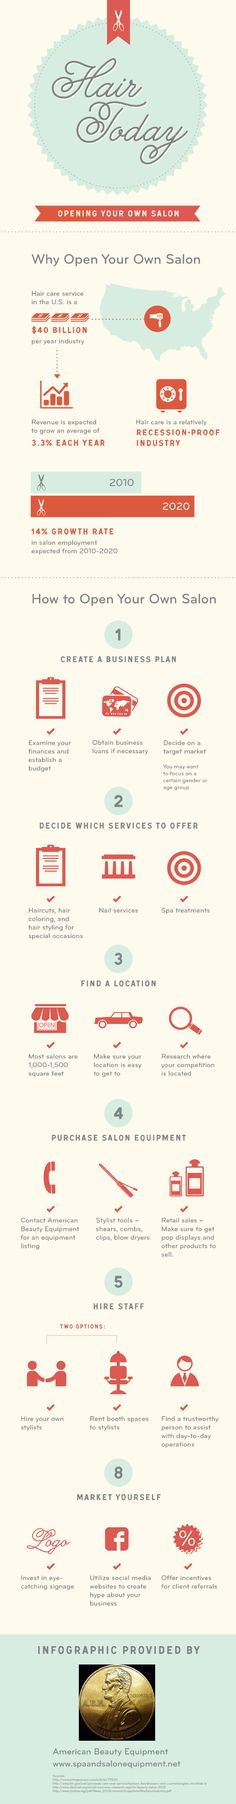 With a detailed business plan, the right location, and quality salon equipment, you can open your own beauty business. Check out this infographic to s